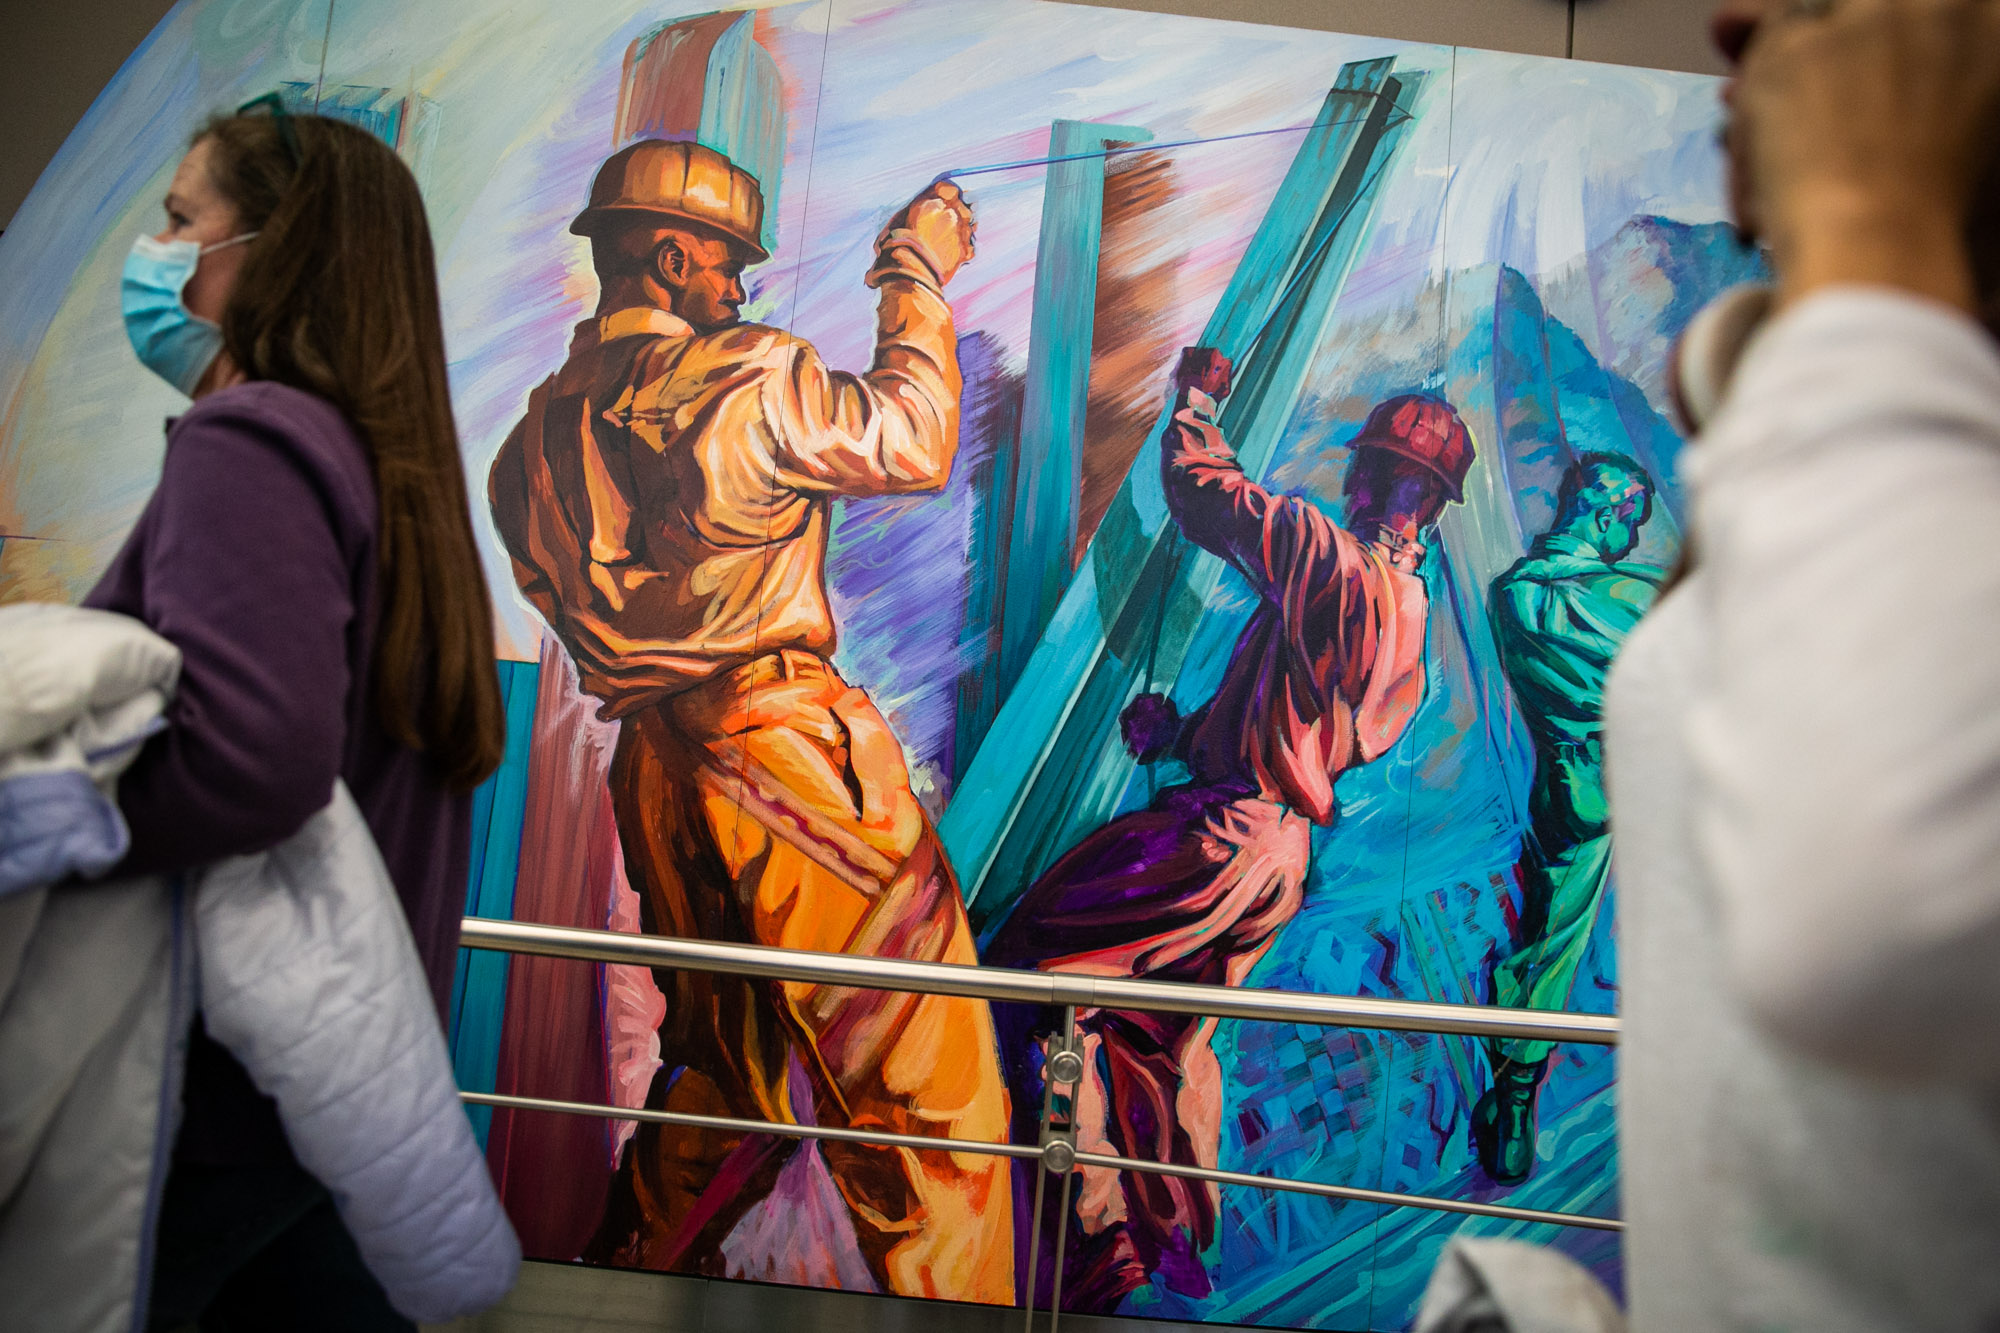 """Passengers walk by part of the """"Mile High and Rising"""" mural by Marcus Akinlana in the Jeppesen Terminal at Denver International Airport"""